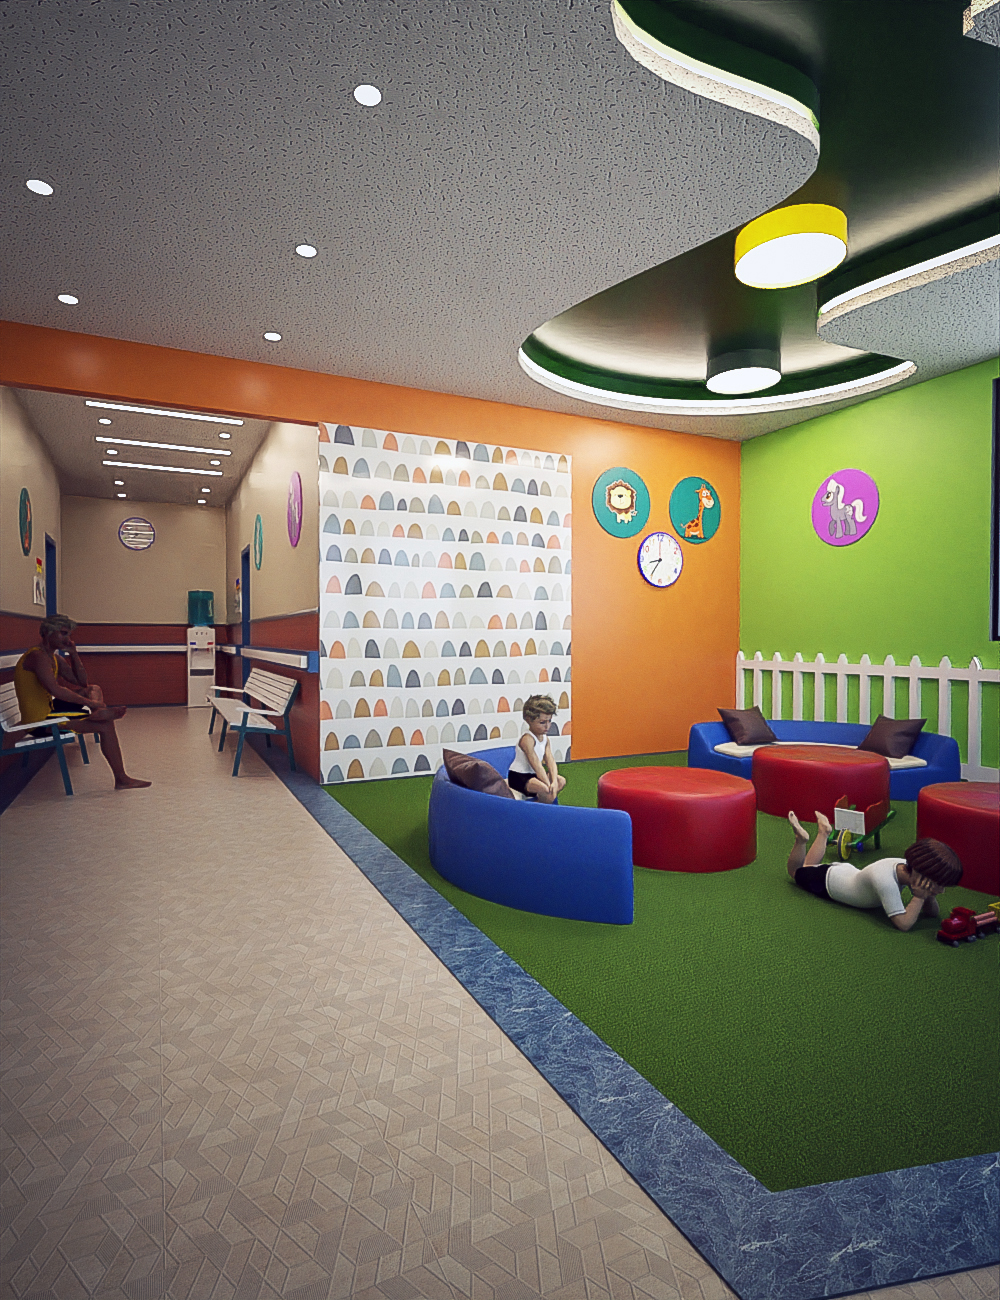 Pediatric Clinic Waiting Area by: Tesla3dCorp, 3D Models by Daz 3D